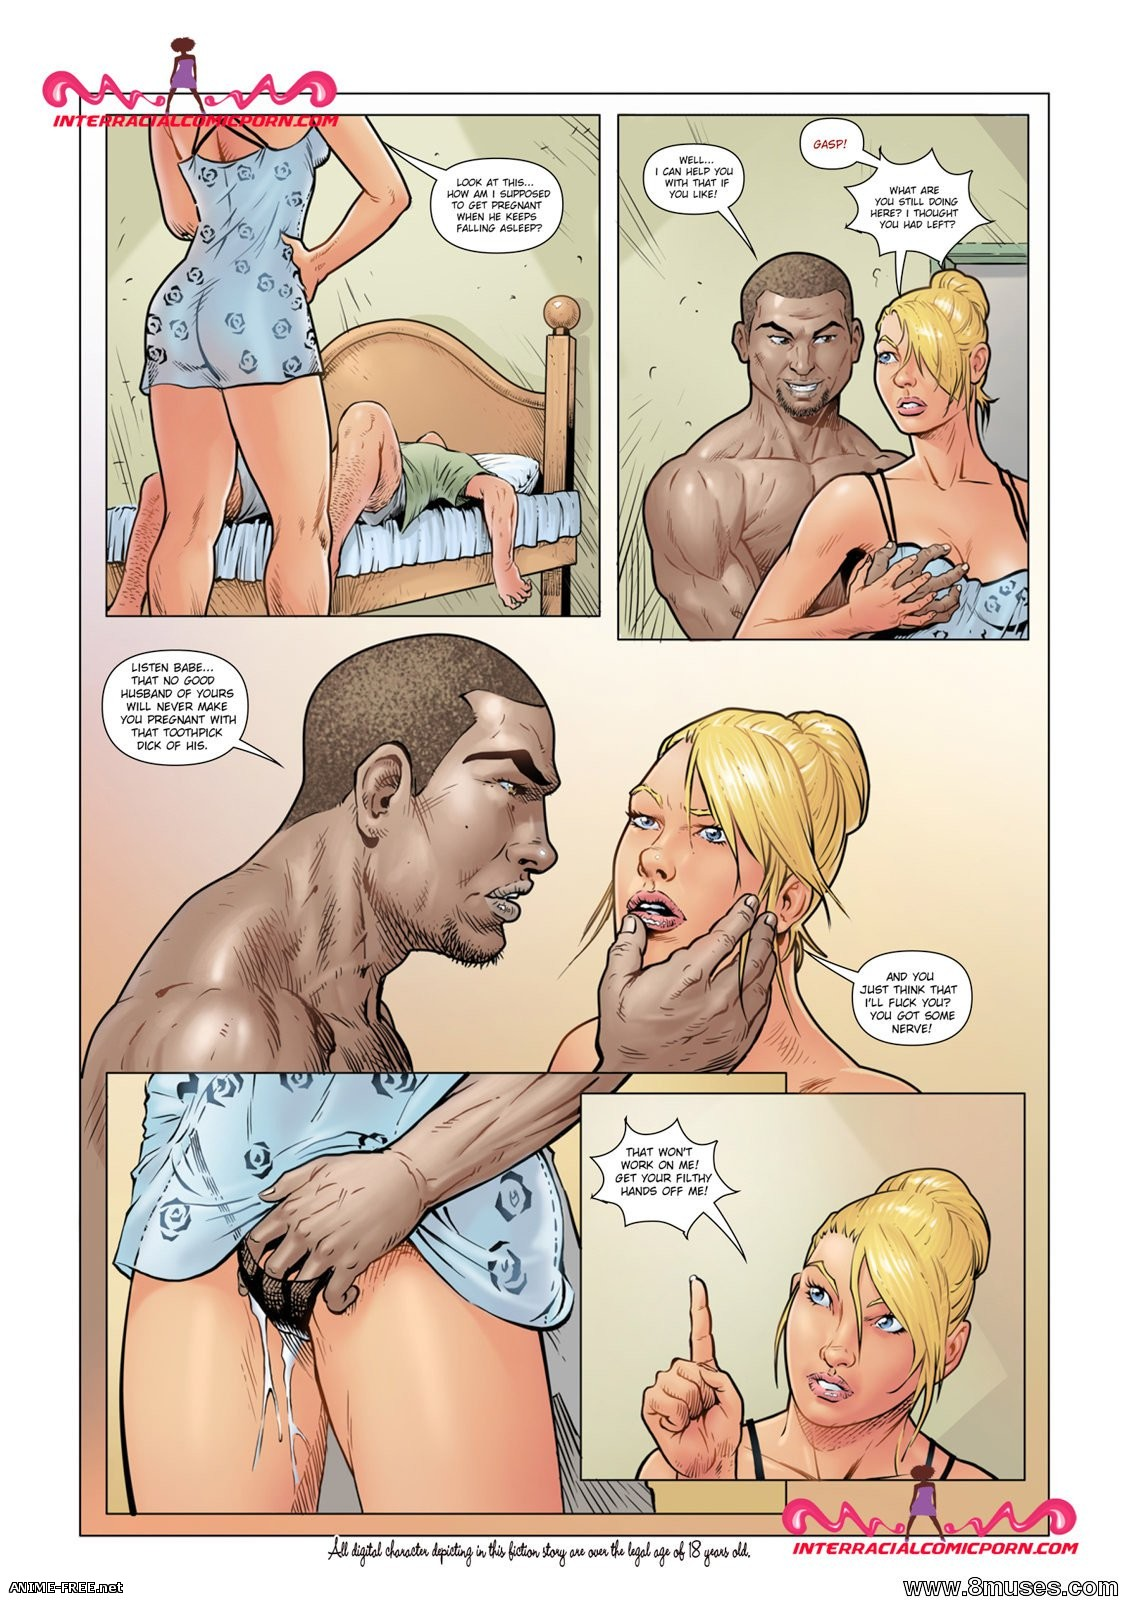 Коллекция комиксов от InterracialComicPorn [Uncen] [RUS,ENG] Porn Comics